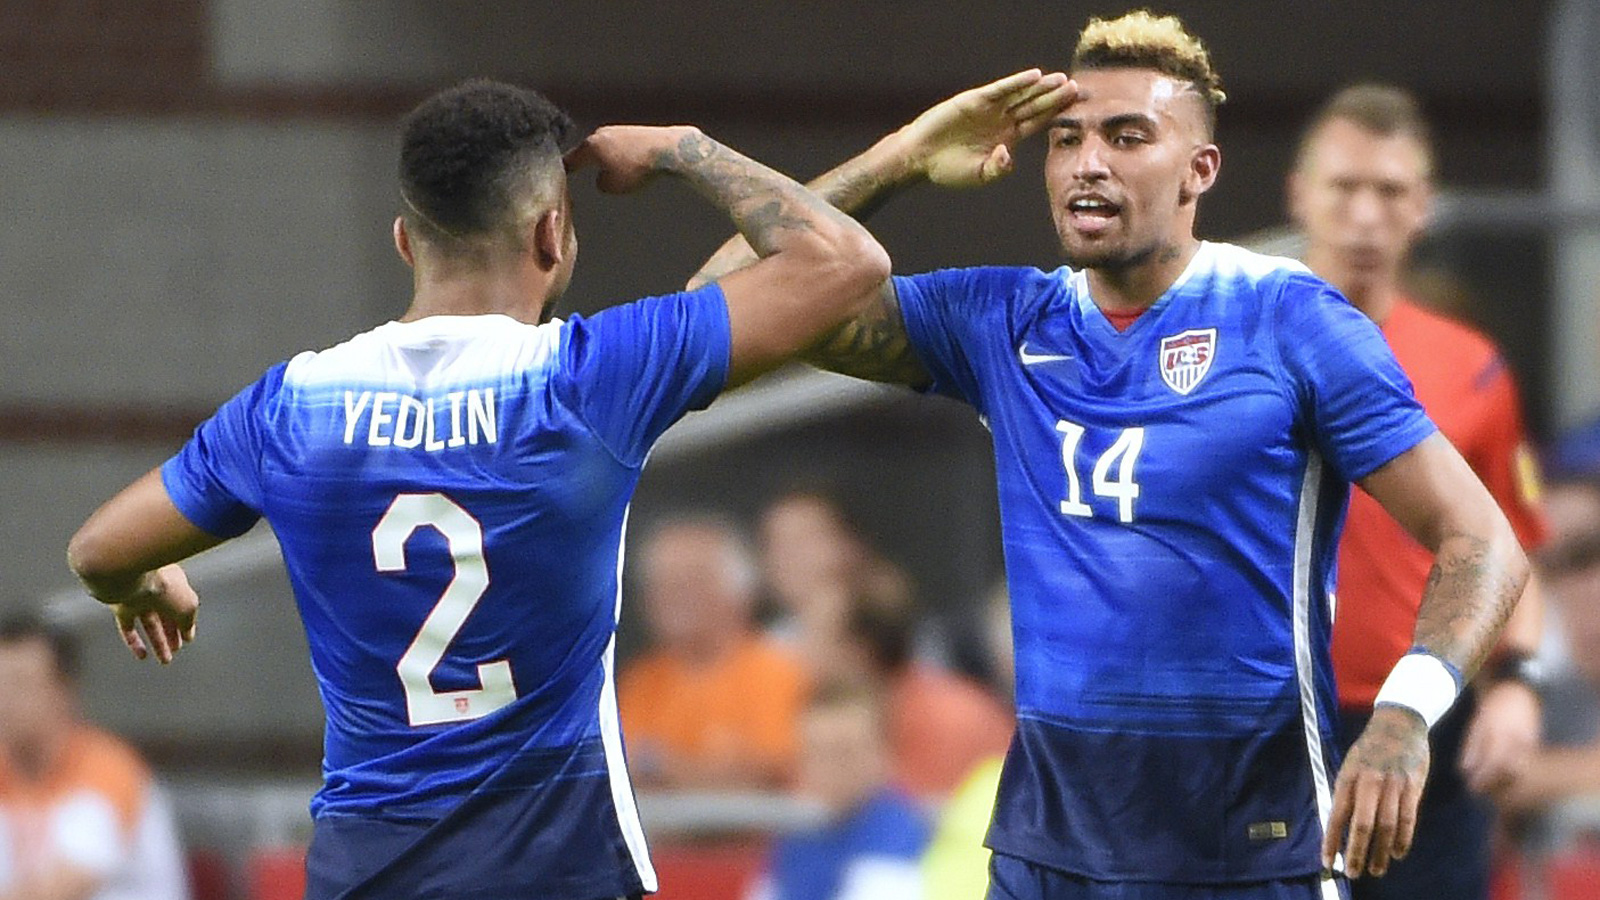 DeAndre Yedlin and Danny Williams salute each other after the latter's goal brought the U.S. level with the Netherlands at 3-3 in the 89th minute.